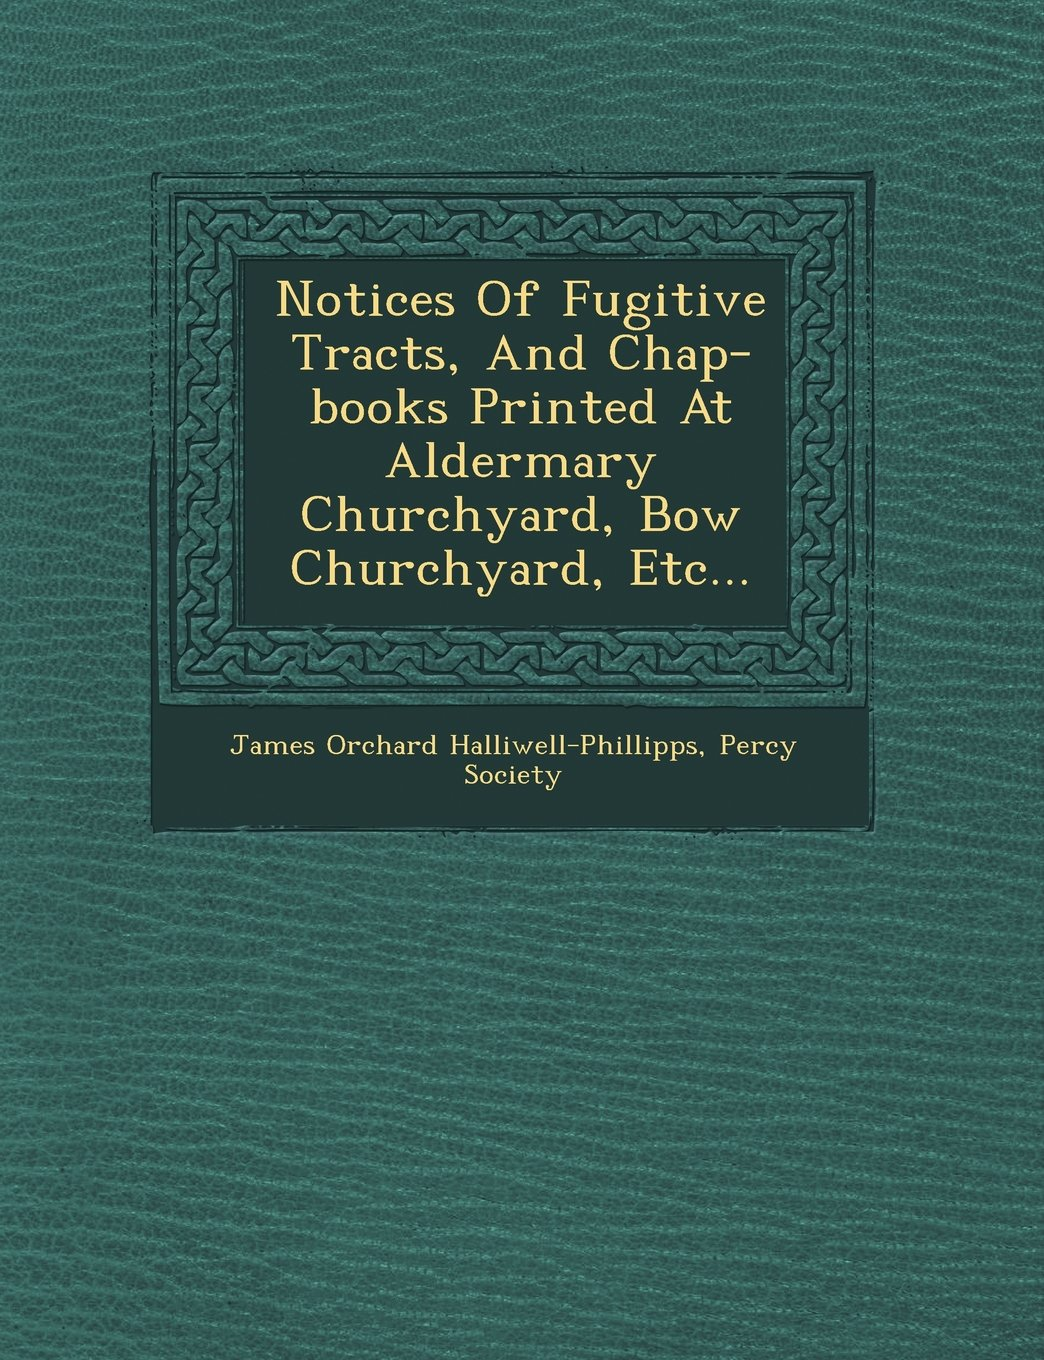 Download Notices Of Fugitive Tracts, And Chap-books Printed At Aldermary Churchyard, Bow Churchyard, Etc... pdf